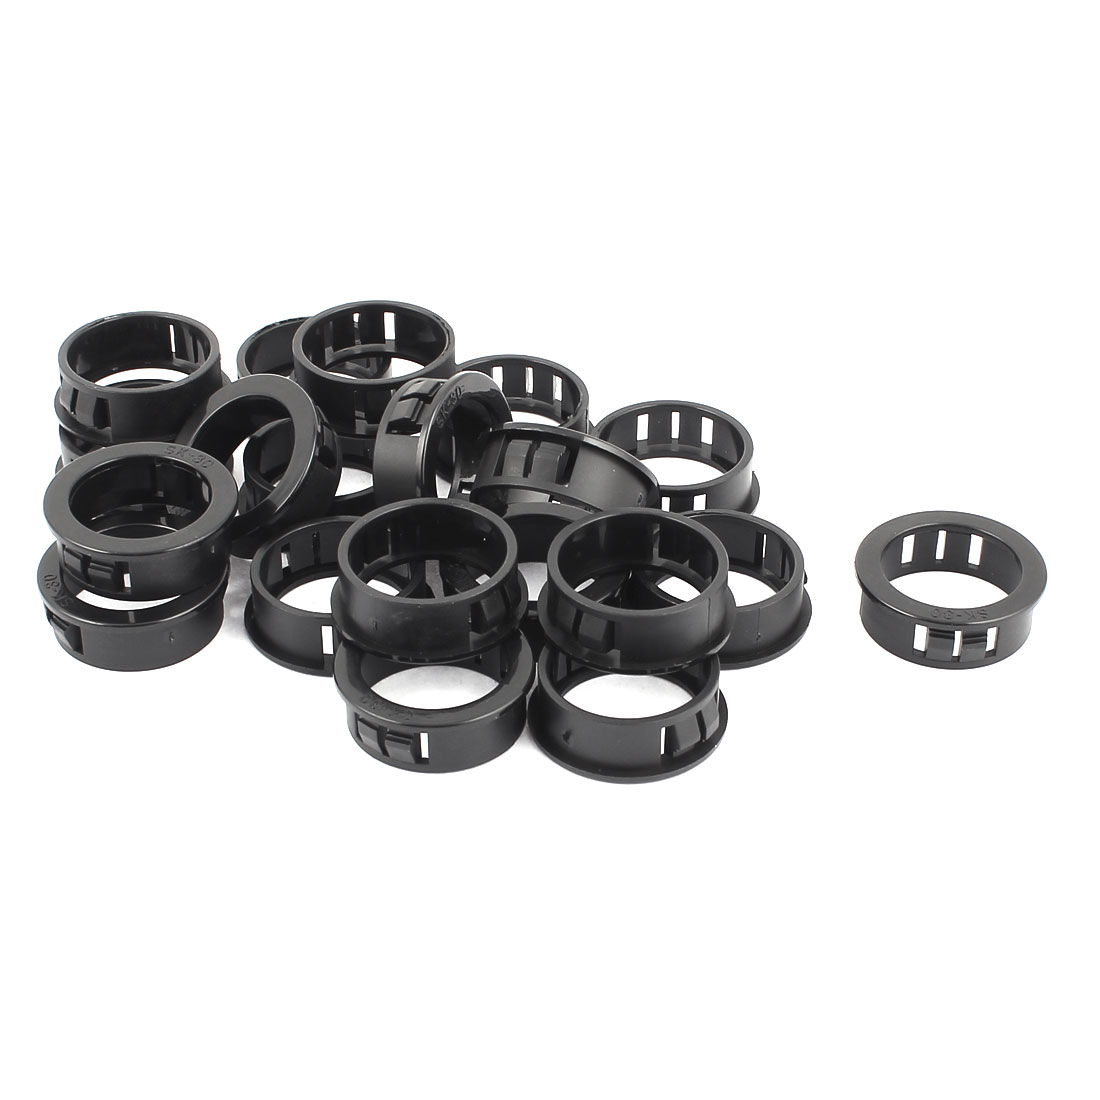 30mm Black Plastic Cable Hose Snap Locking Bushing Protective Grommet 20 Pcs